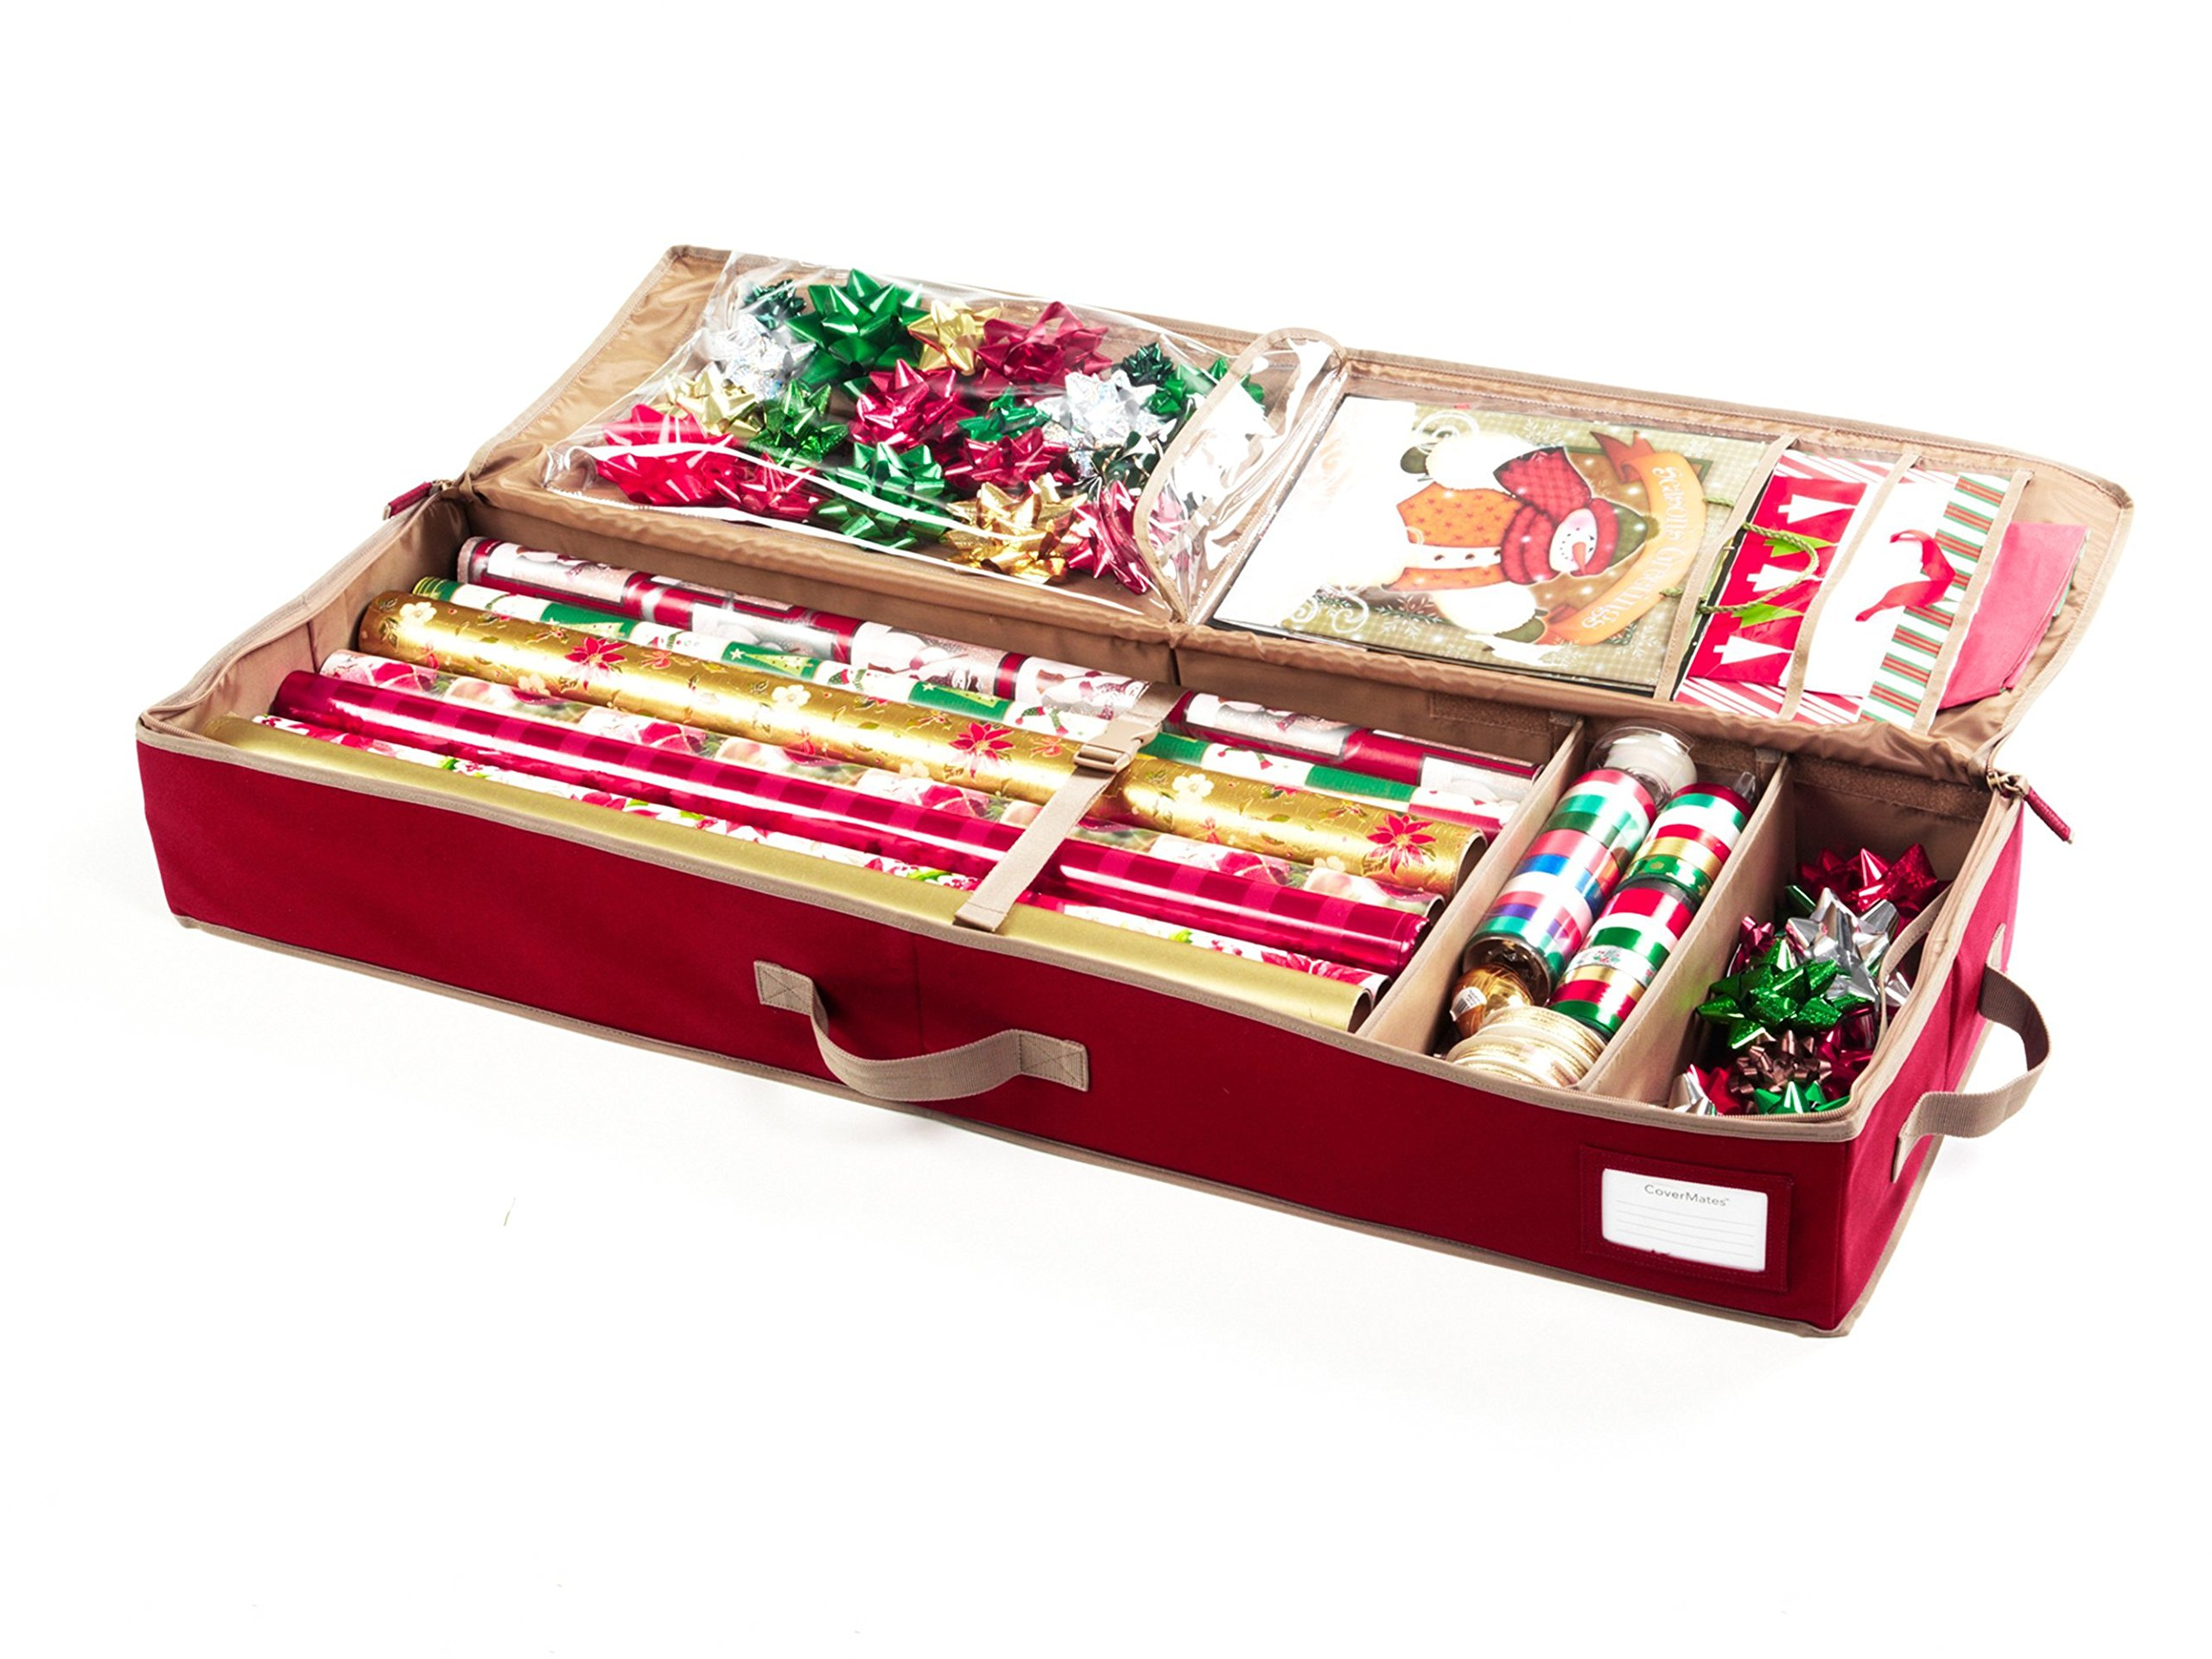 CoverMates – Premium Deluxe Gift Wrap Organizer – Holds up to 15 Rolls + Accessories – 3 Year Warranty- Red